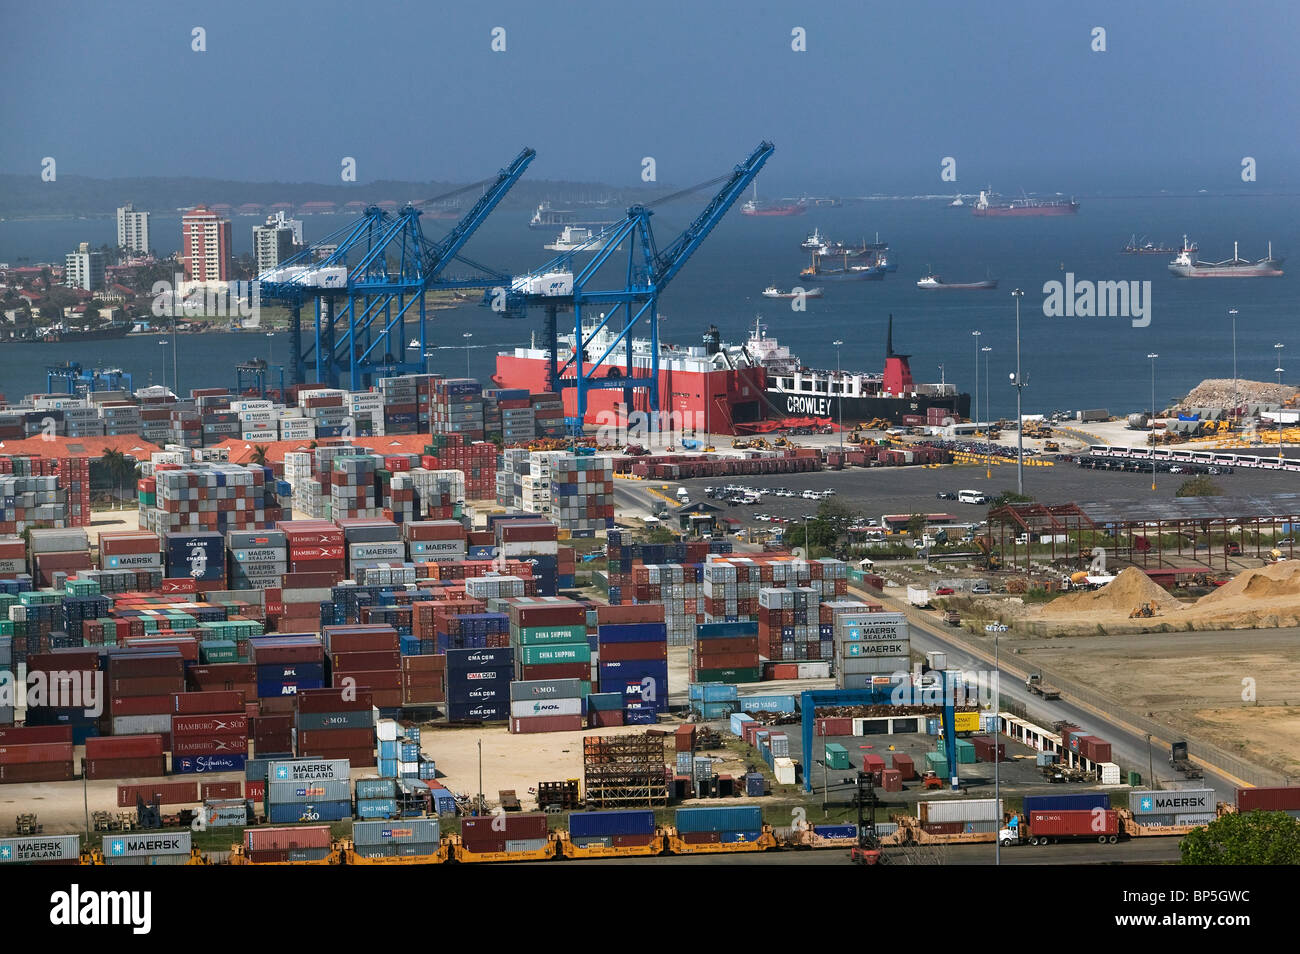 aerial view above containers cranes Cristobal port Colon Republic of Panama - Stock Image